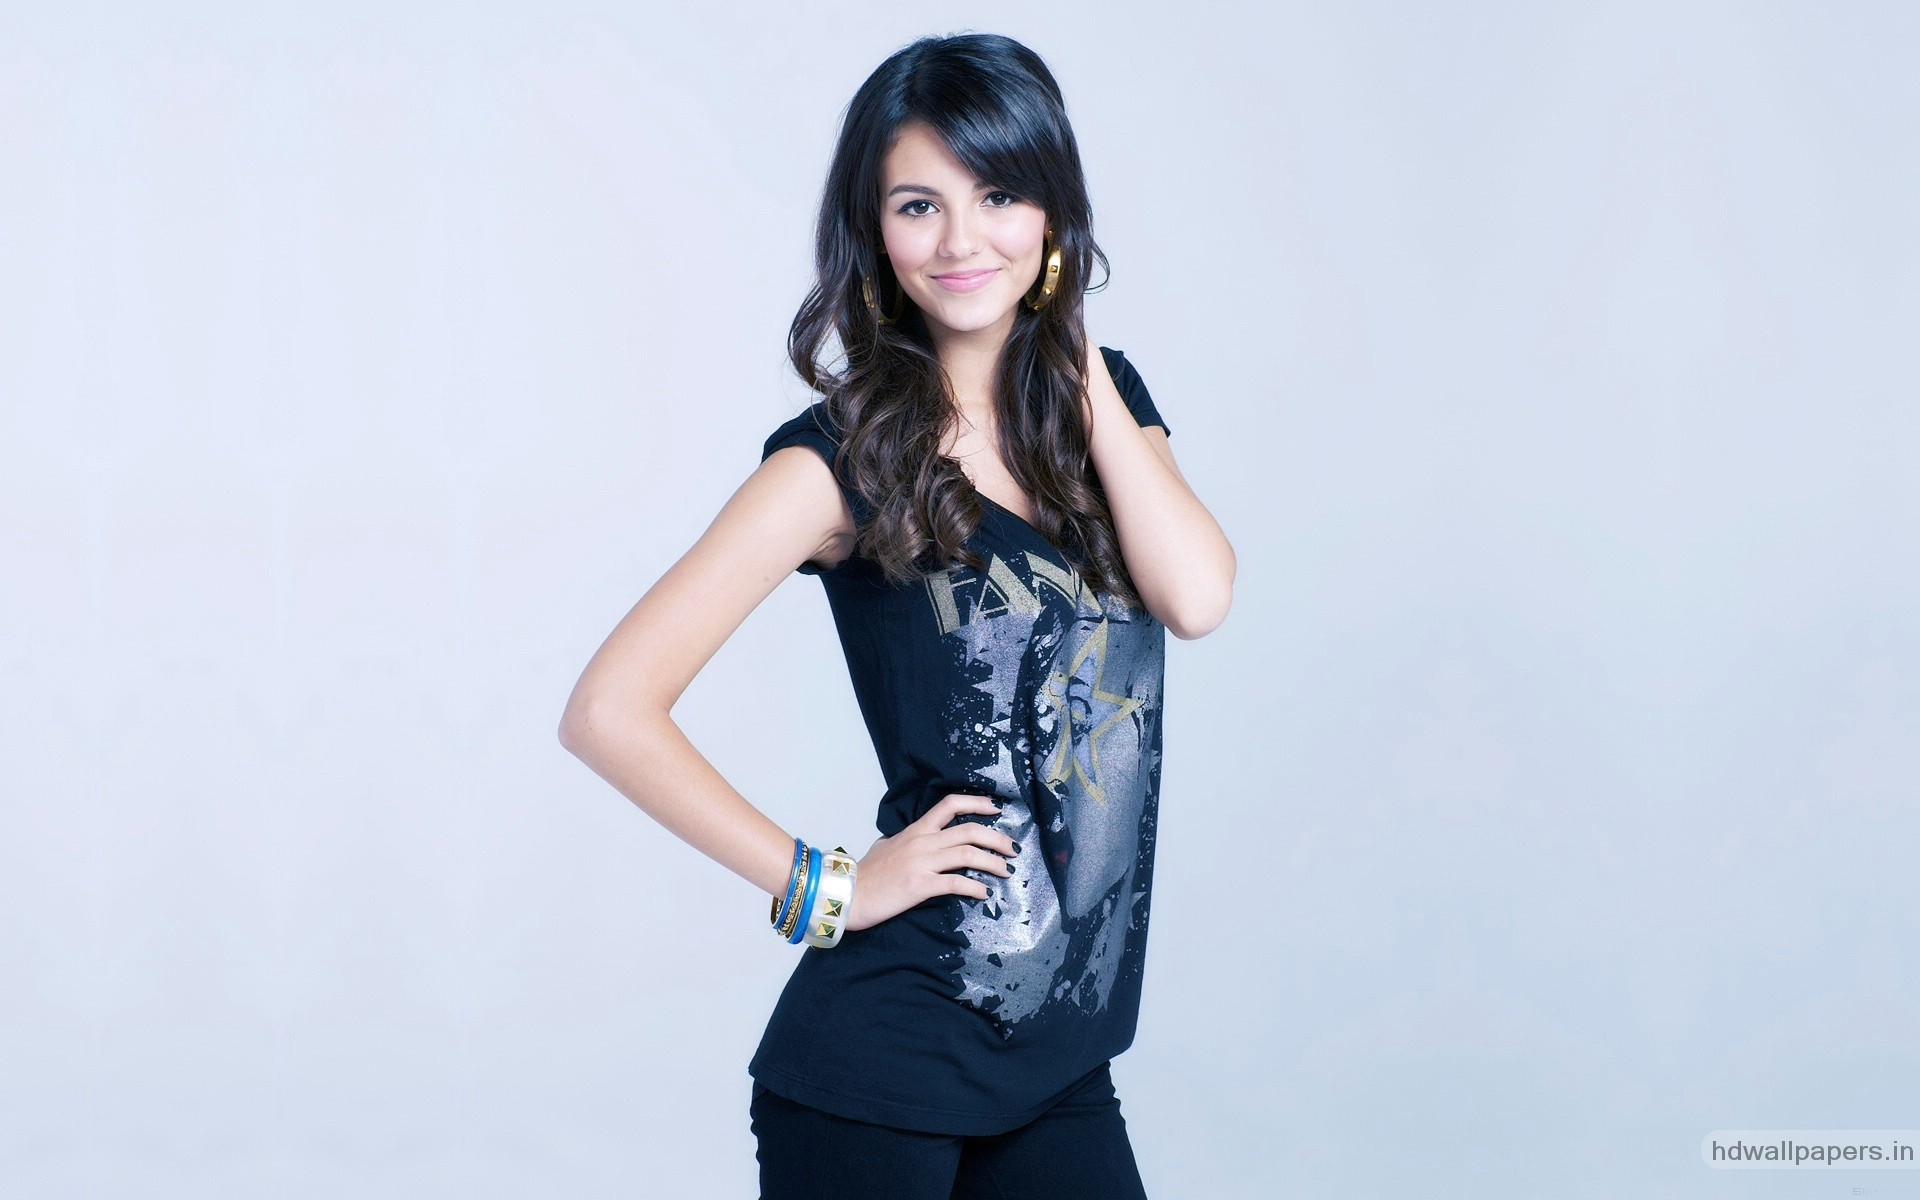 1920x1200 - Victoria Justice Wallpapers 8